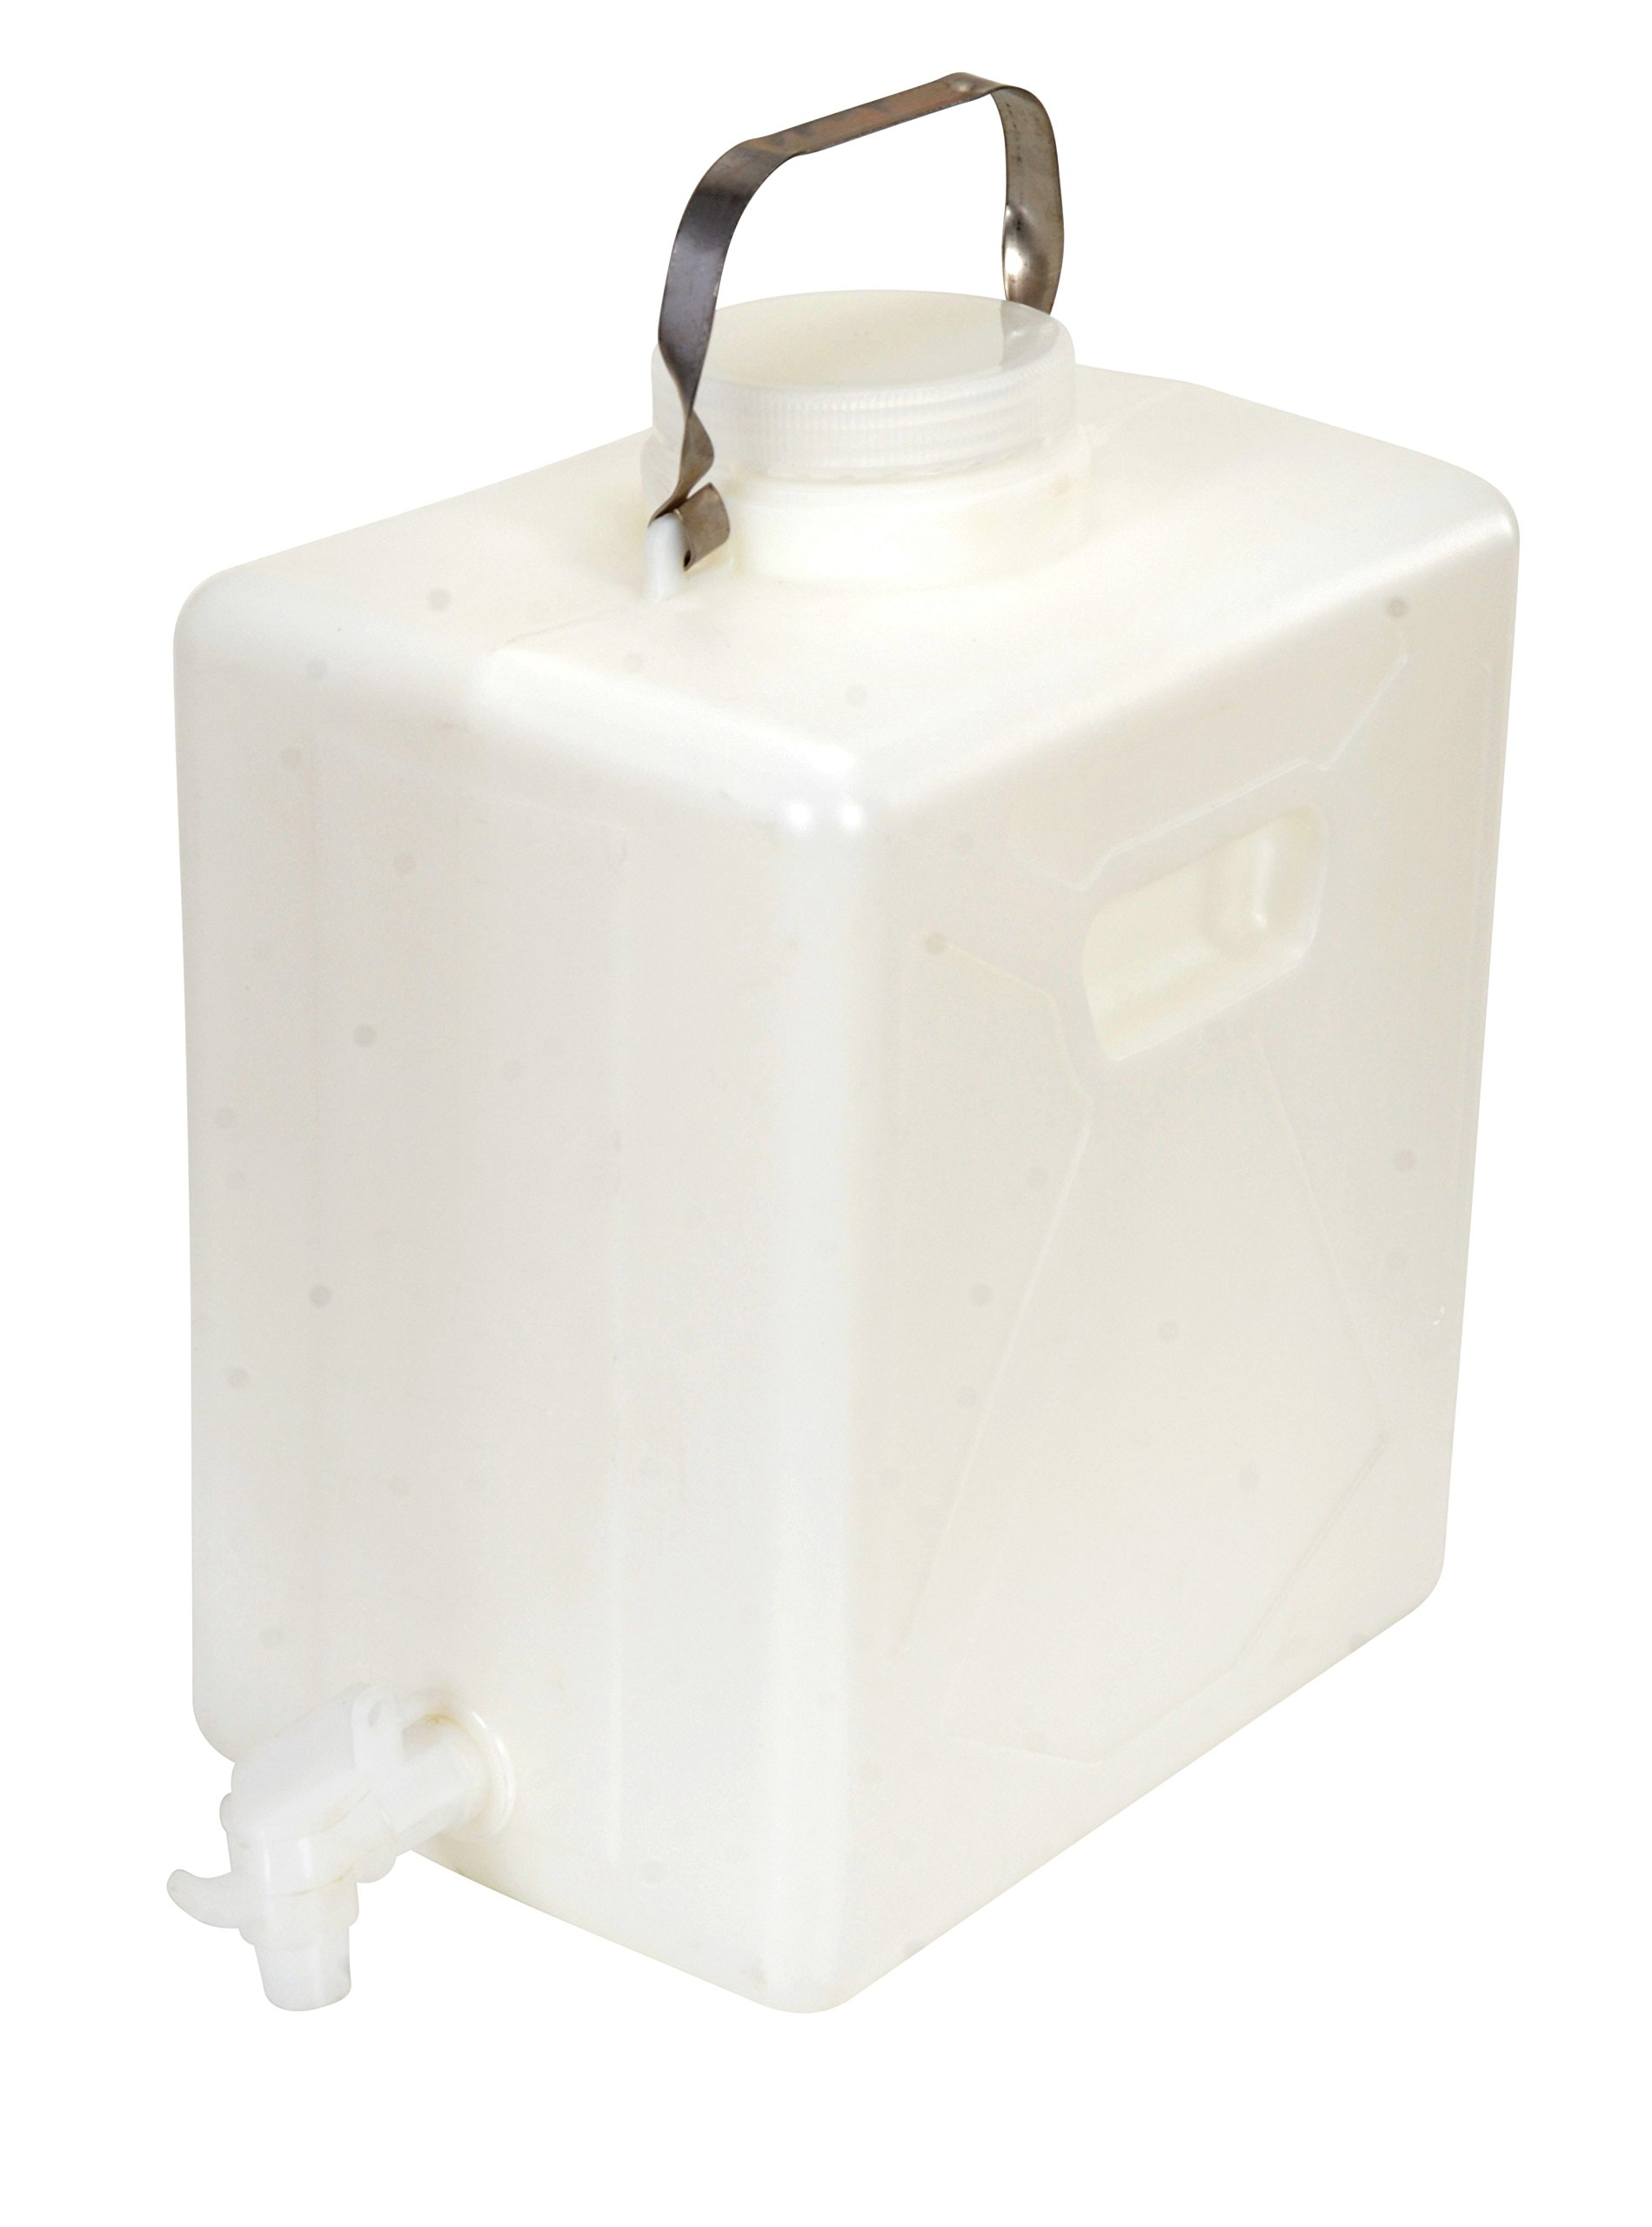 Vestil CARB-5-SSH-S Wide Mouth High Density Polyethylene (HDPE) Rectangular Carboy with Stainless Steel Handle and 3/4'' Polyethylene Spigot, 5 Gallon Capacity, Natural by Vestil